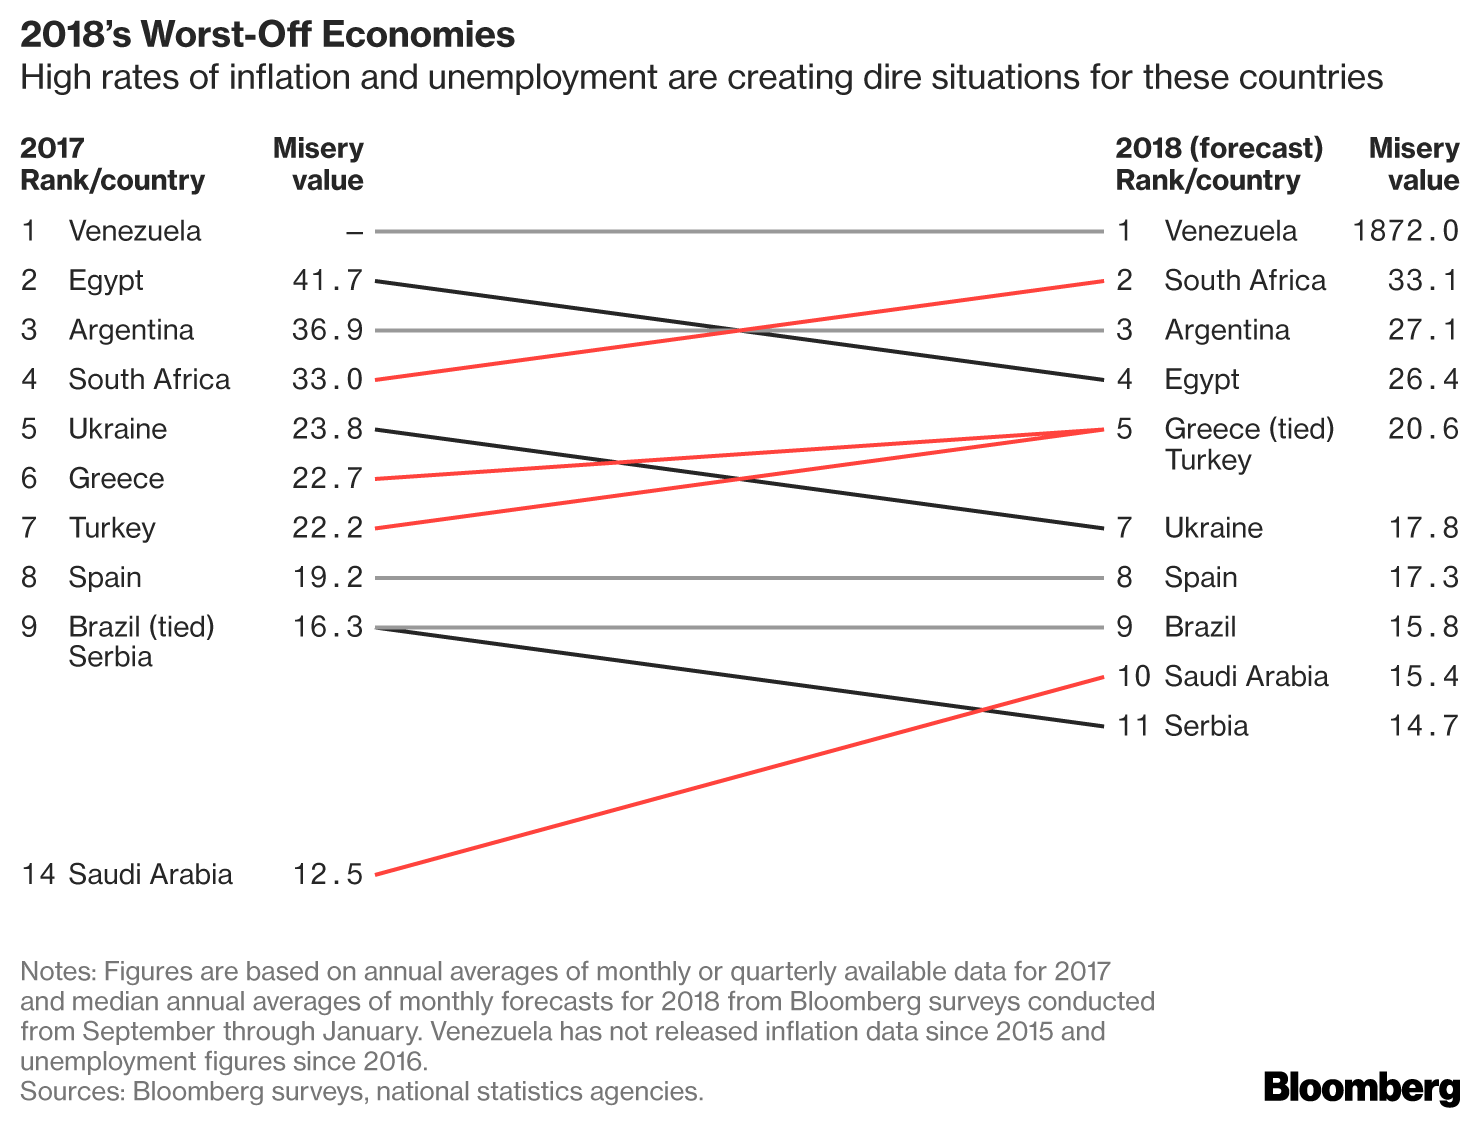 greece-among-most-miserable-economies-according-to-bloomberg-index1